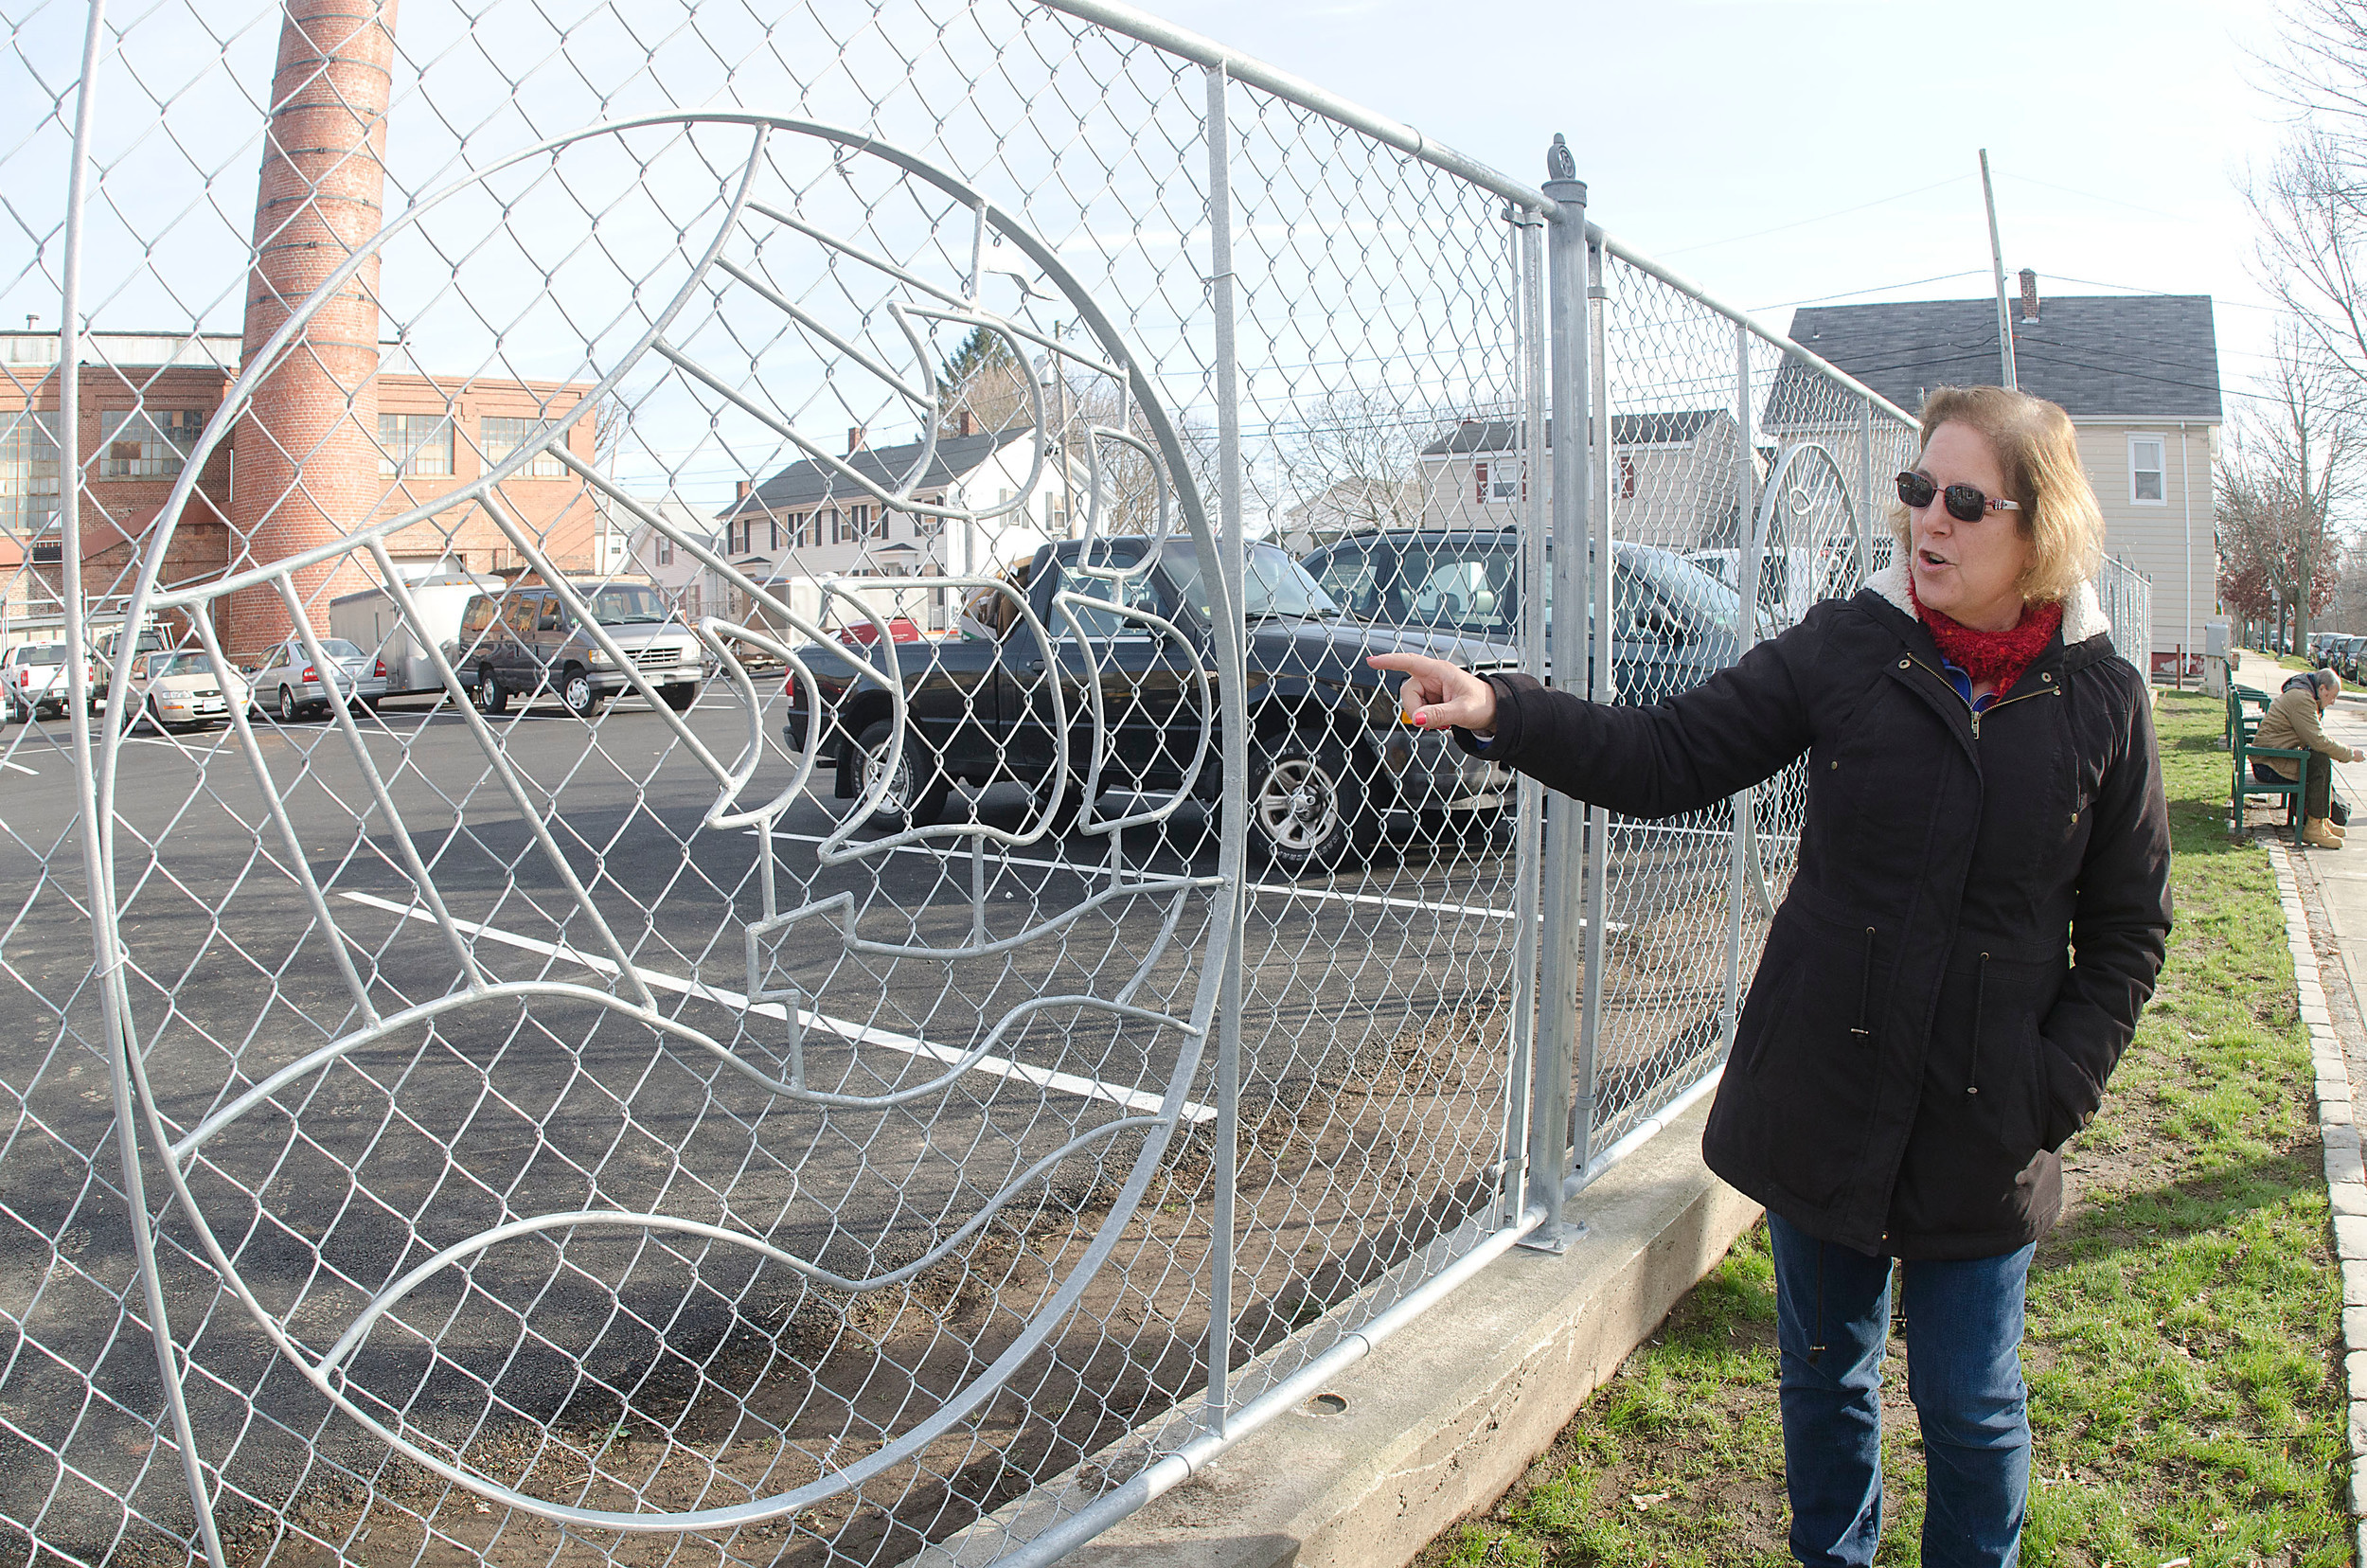 Mosaico Executive Director Diana Campbell shows the decorative fence that was recently erected along Wood Street. Medallions on the fence represent slices of life around Bristol.